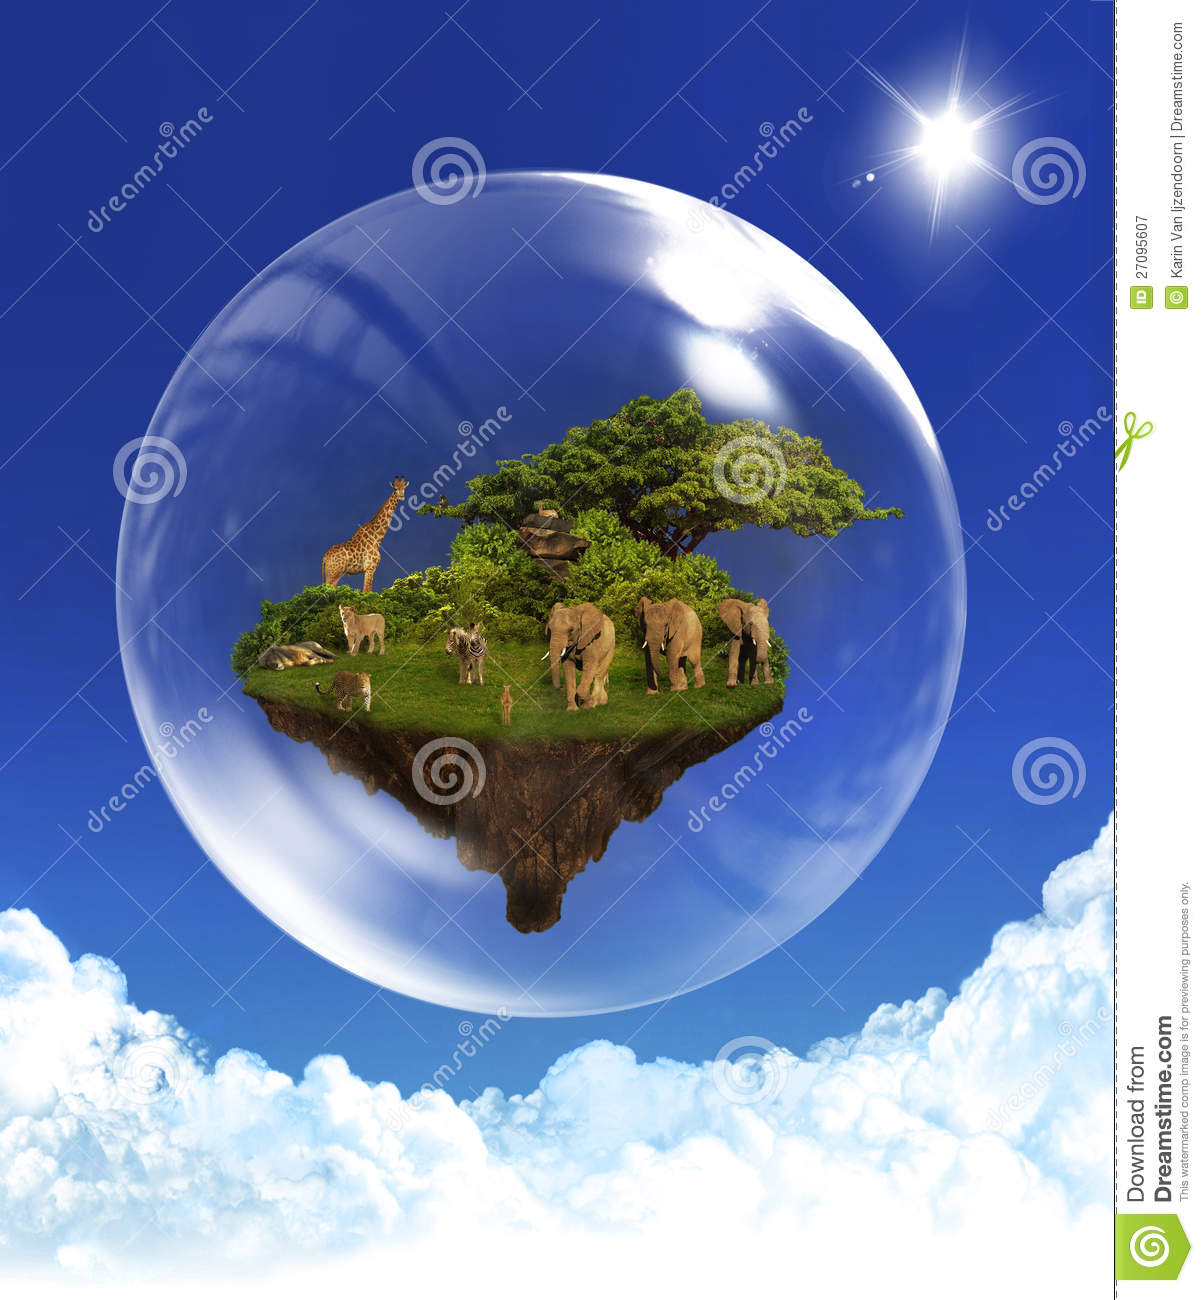 Floating Island With Animals In Bubble Stock Image Image